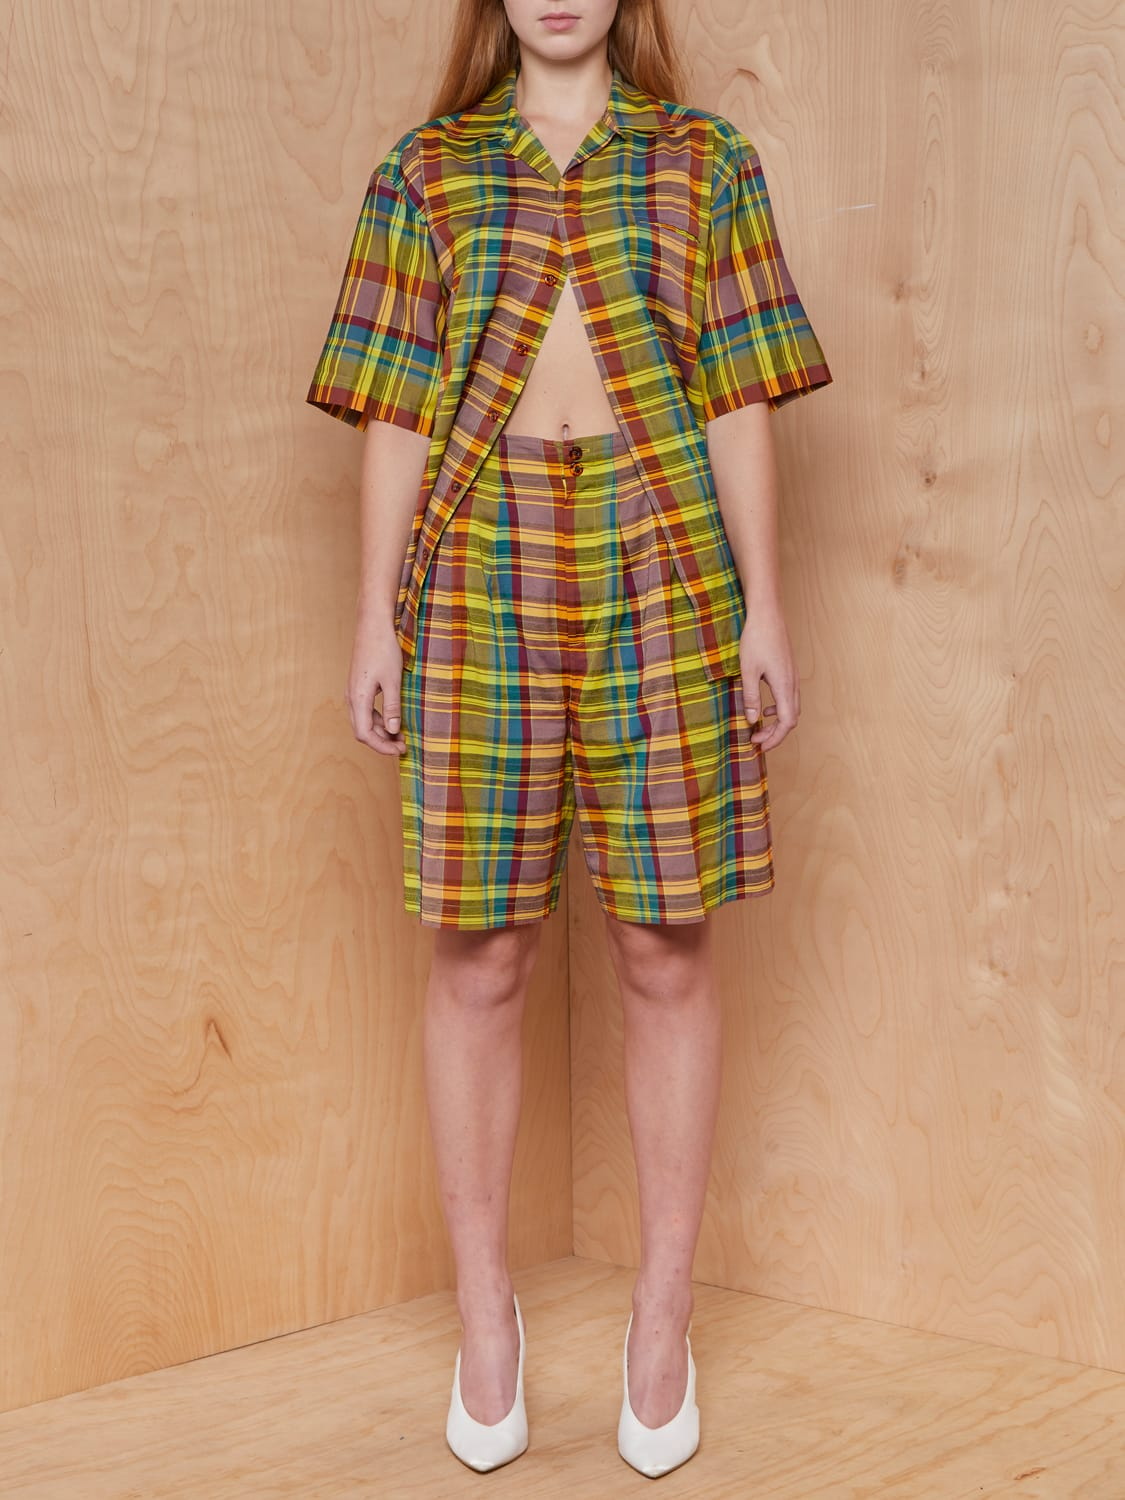 Vintage Primary Color Plaid Short Set